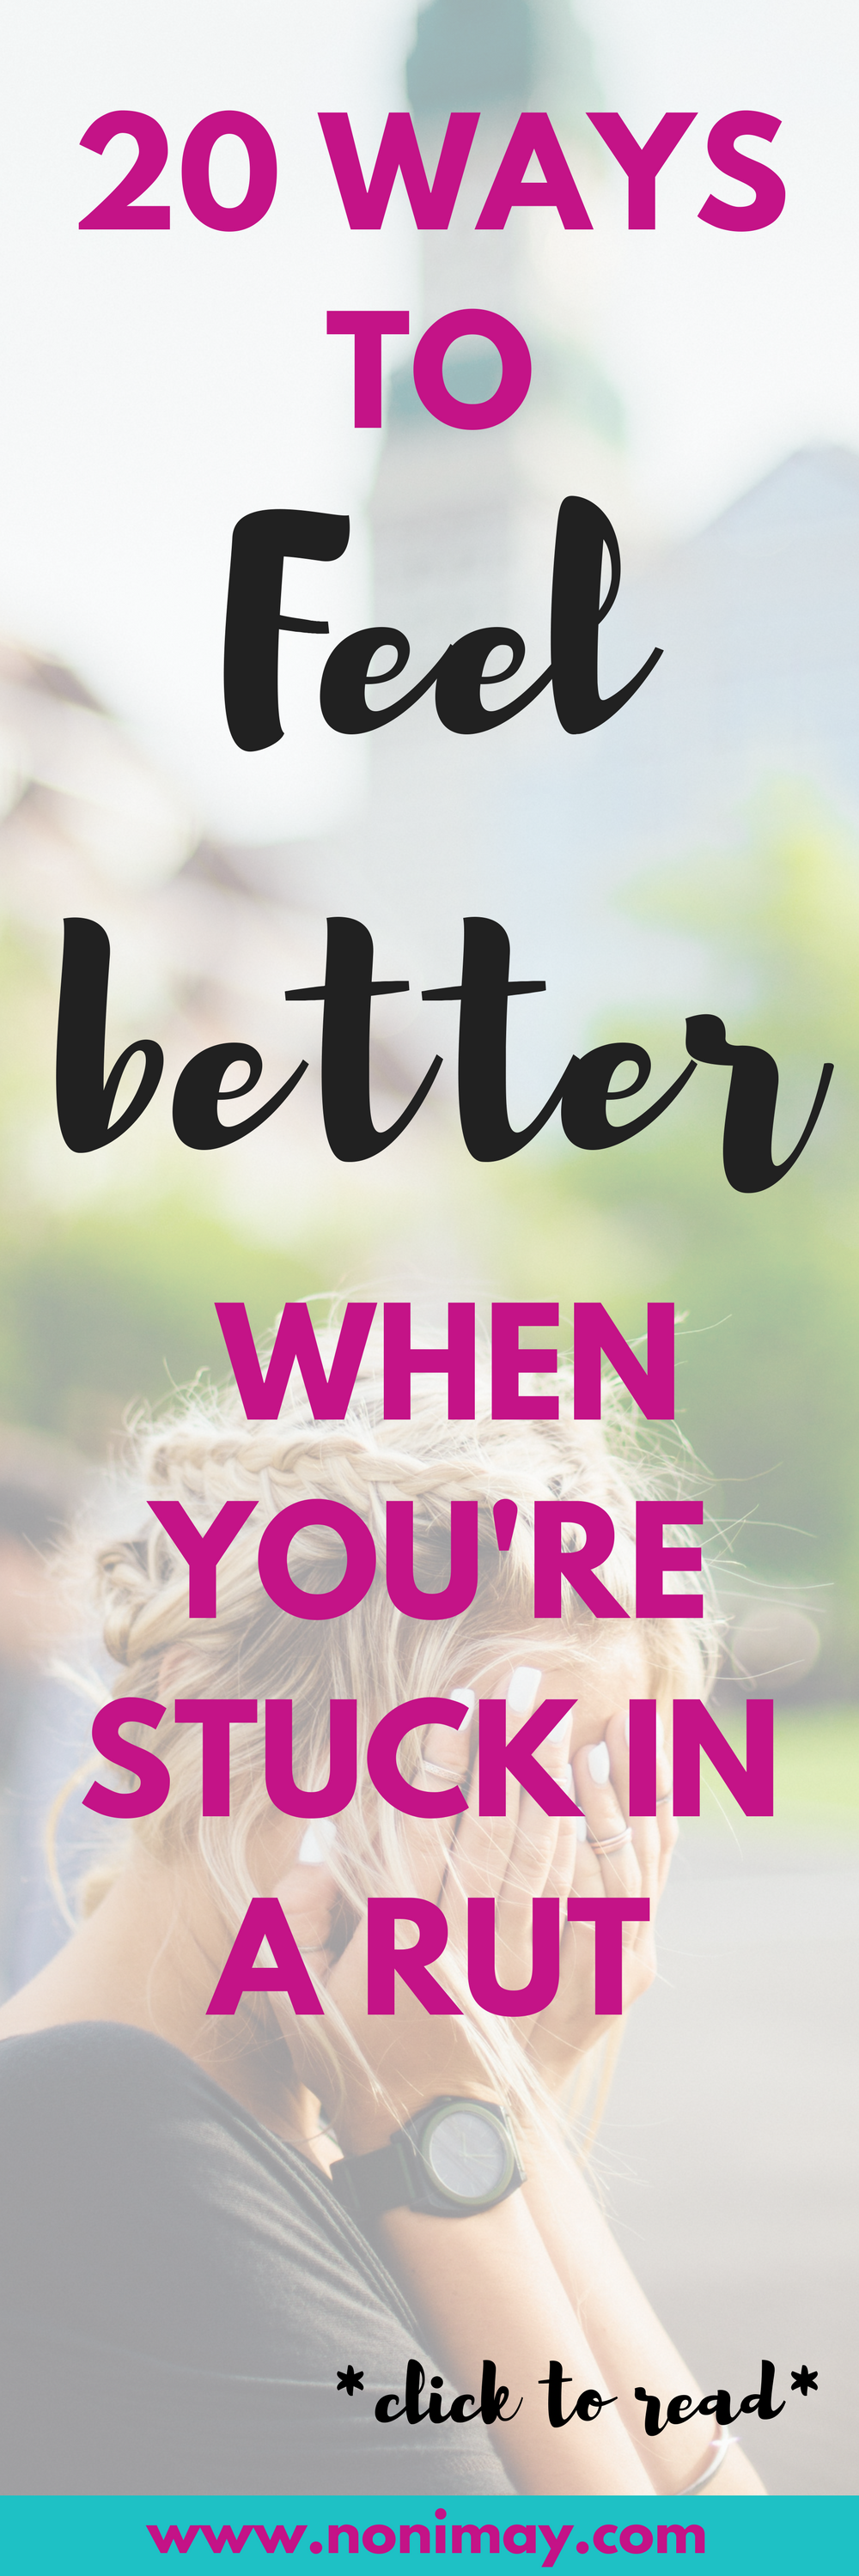 20 Ways to Feel Better When You're Stuck in a Rut